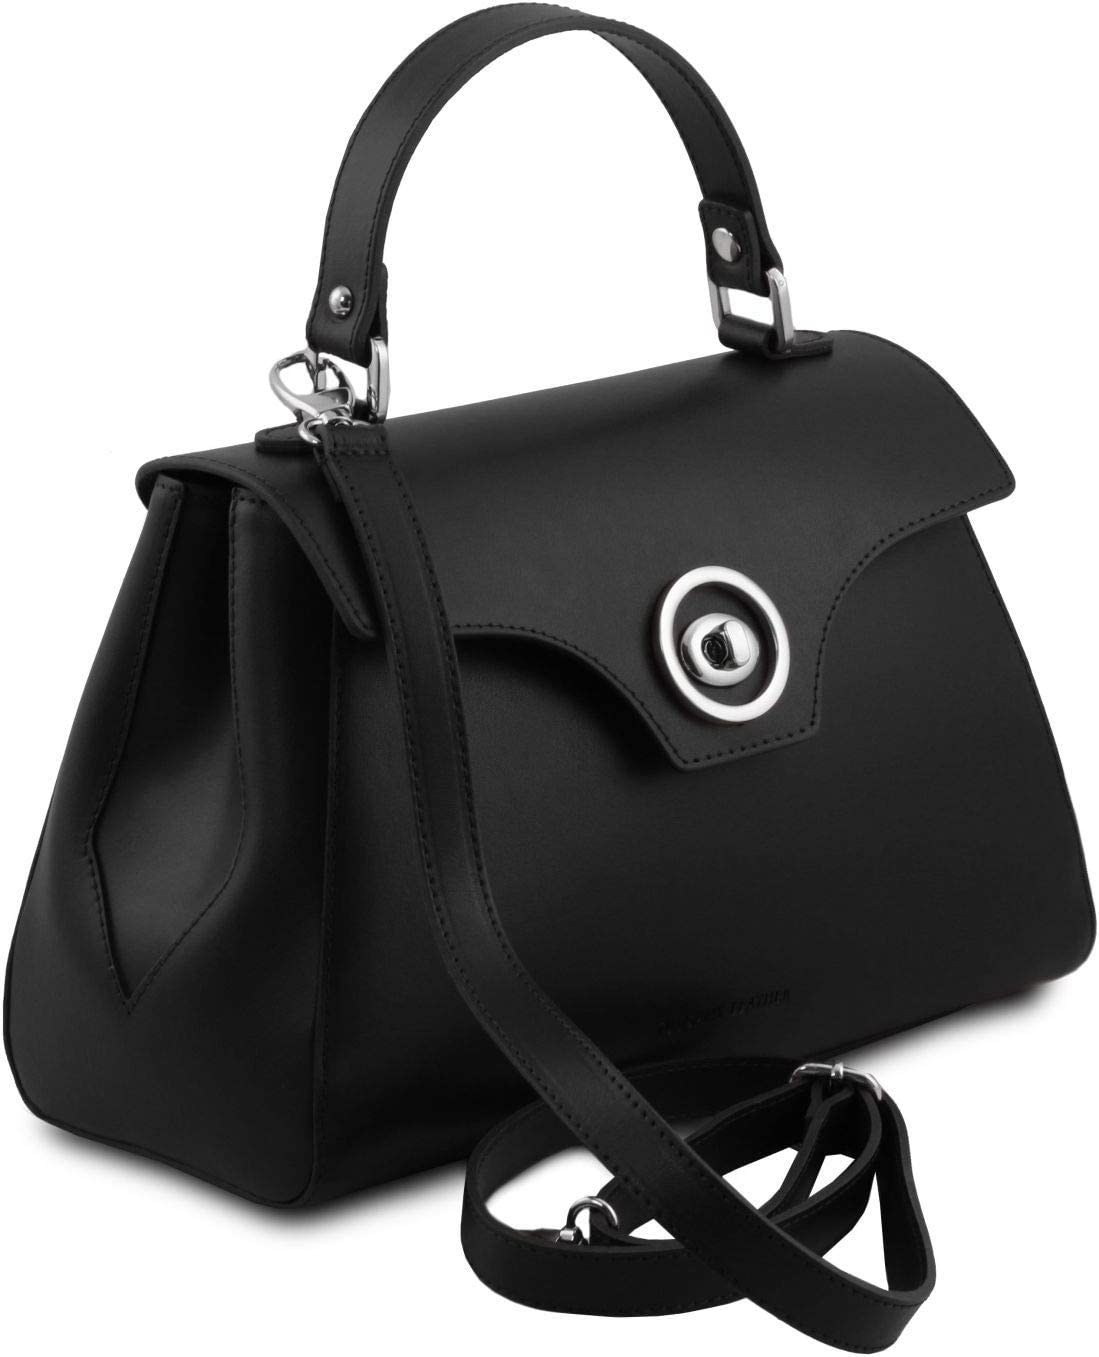 Tuscany Leather TLBag Bauletto in pelle Cognac Nero